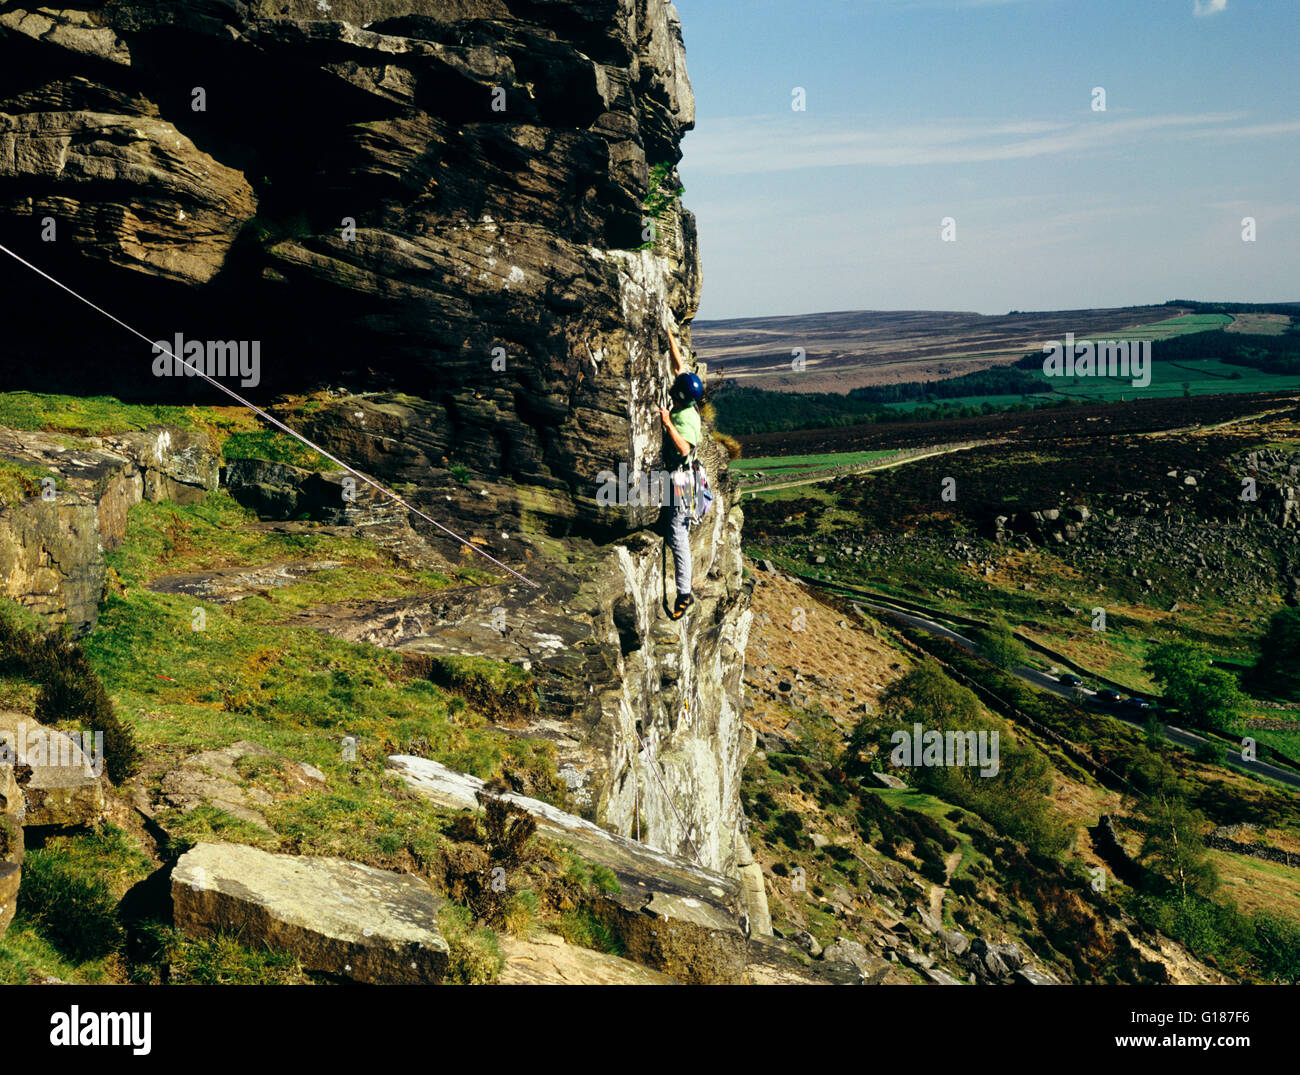 Man climbing Peapod a severe challenging climb on Curbar Edge Peak District Derbyshire England UK  roped to steep - Stock Image